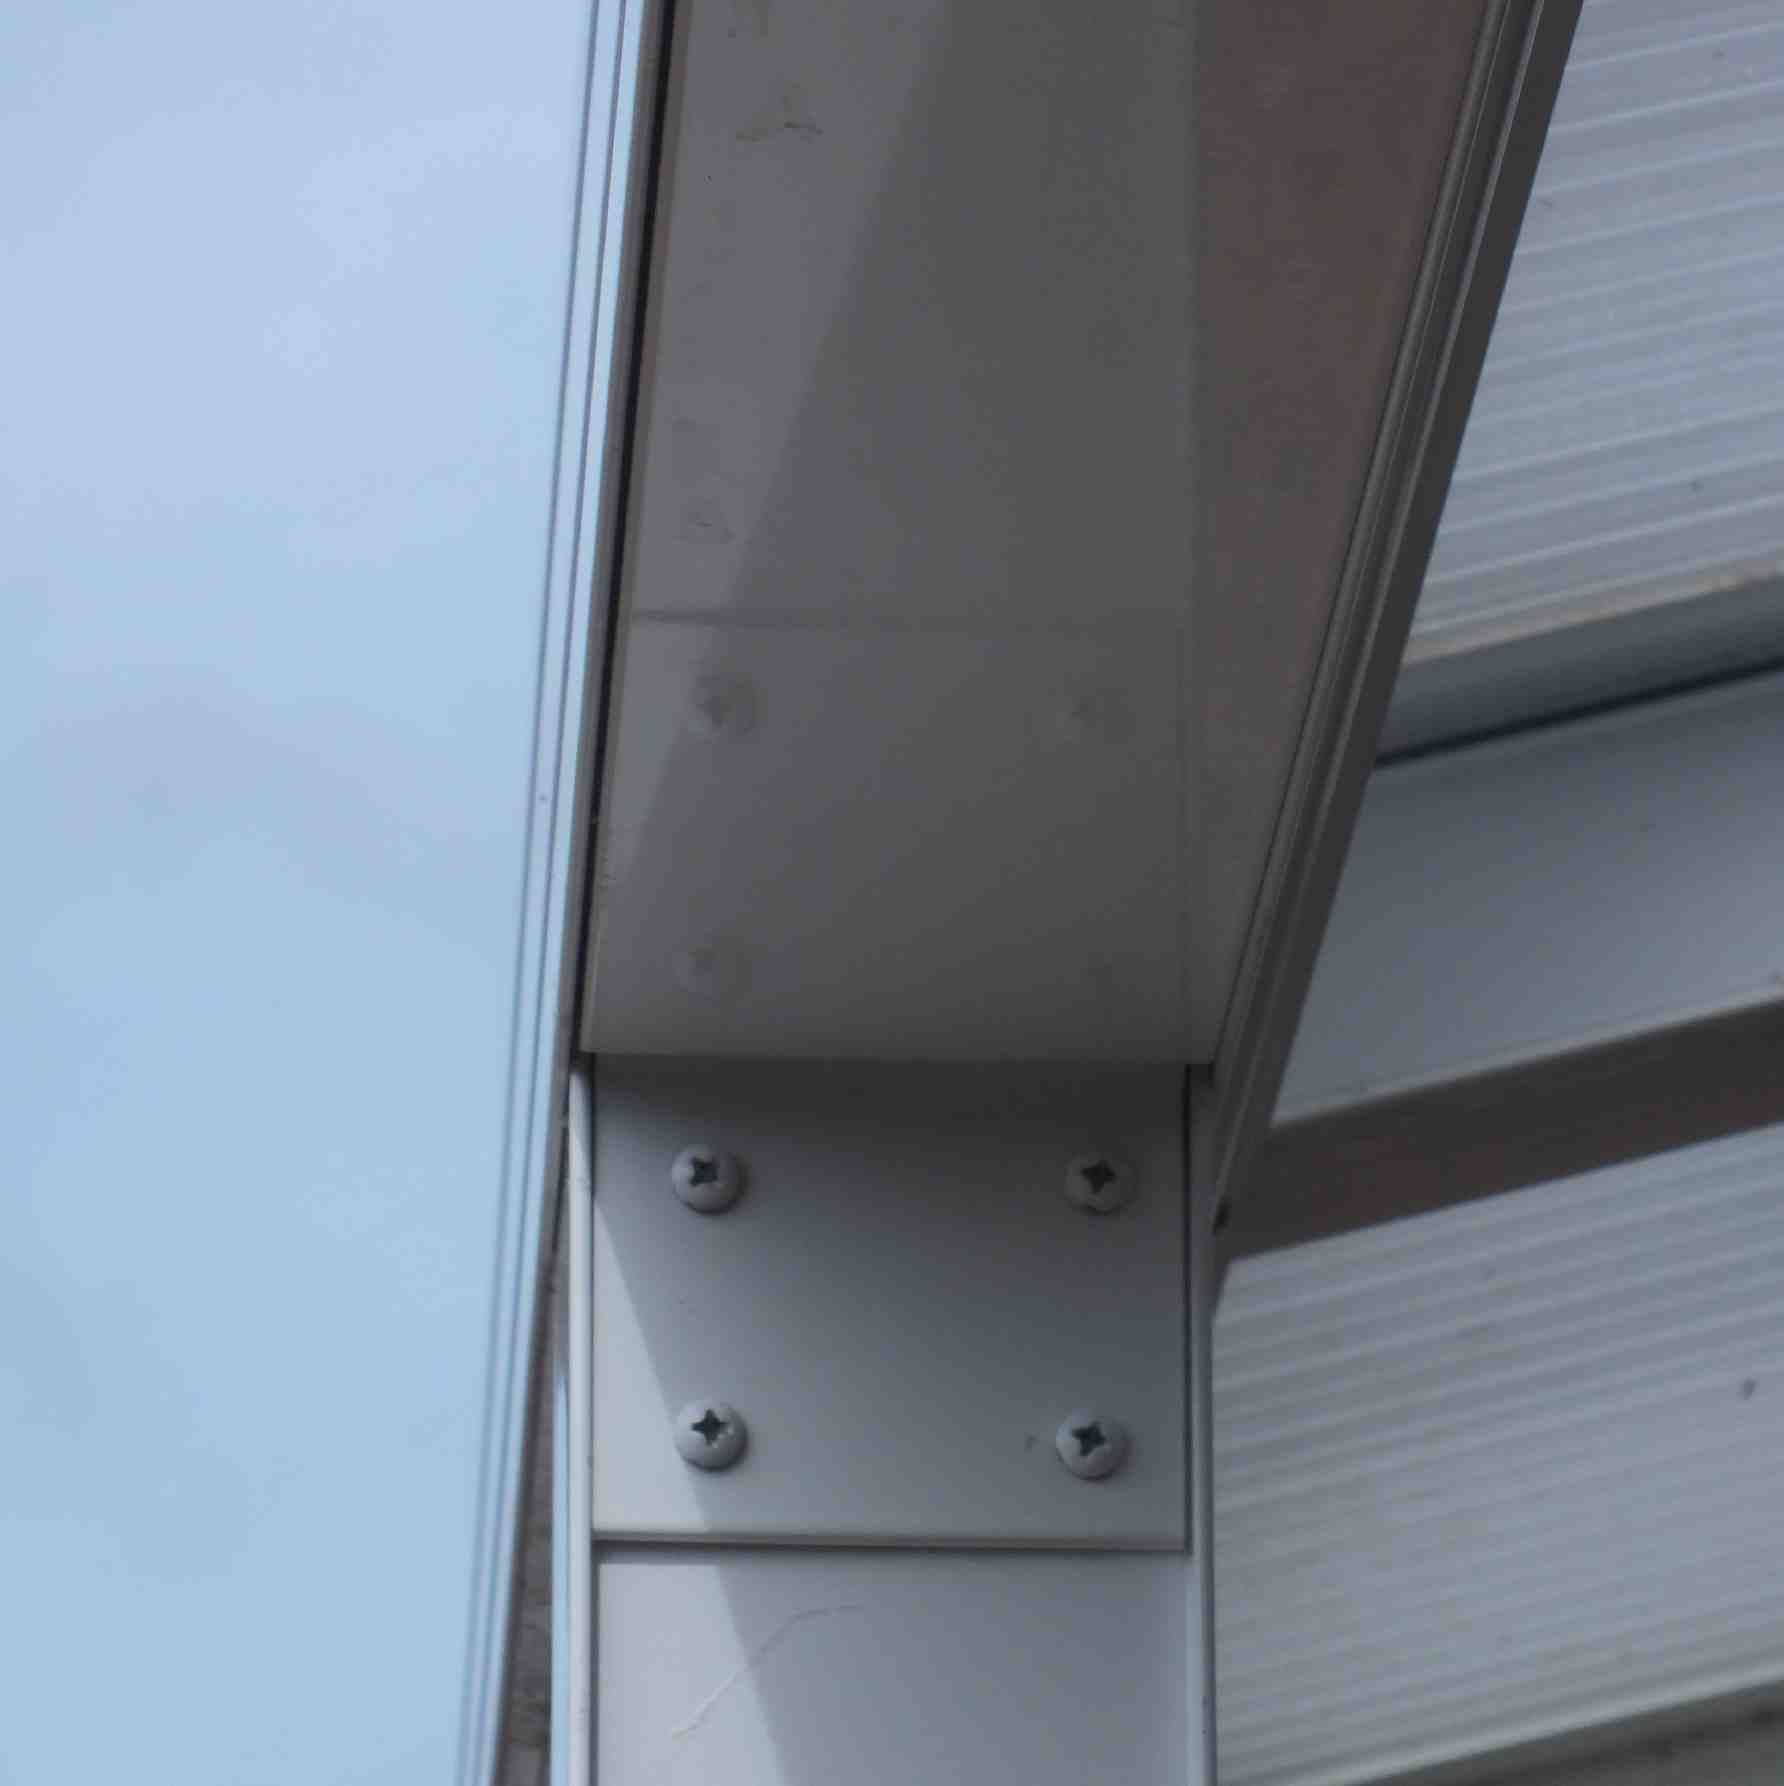 Affordable Omega Verandah with 16mm Polycarbonate Glazing - 11.4m (W) x 4.0m (P), (5) Supporting Posts